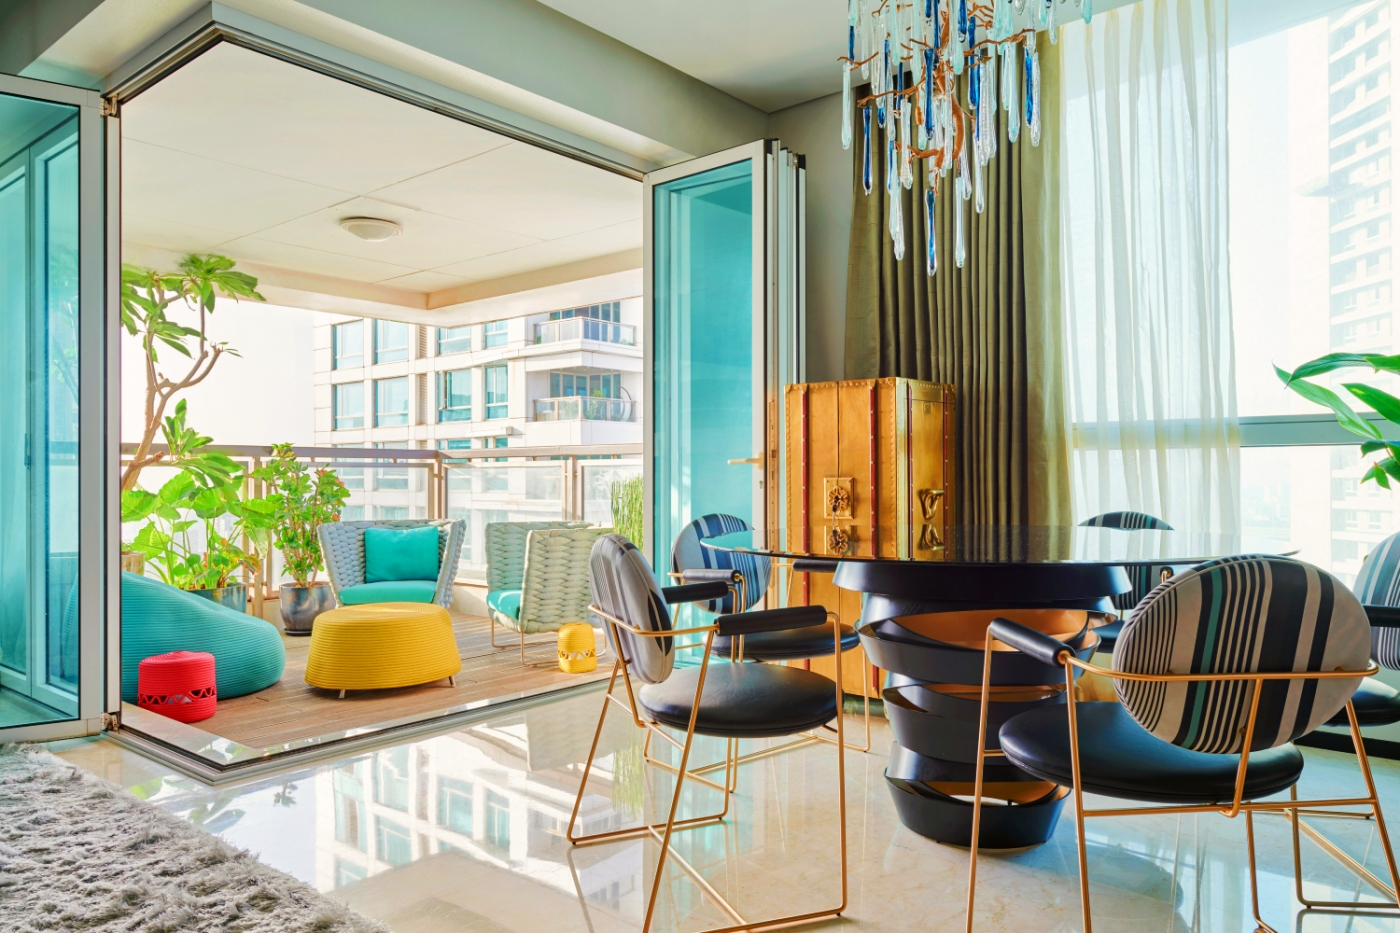 luxury apartment A Luxury Apartment That Magnifies The Exclusive Lifestyle Experience A Luxury Apartment That Magnifies The Exclusive Lifestyle Experience feature image 1400x933